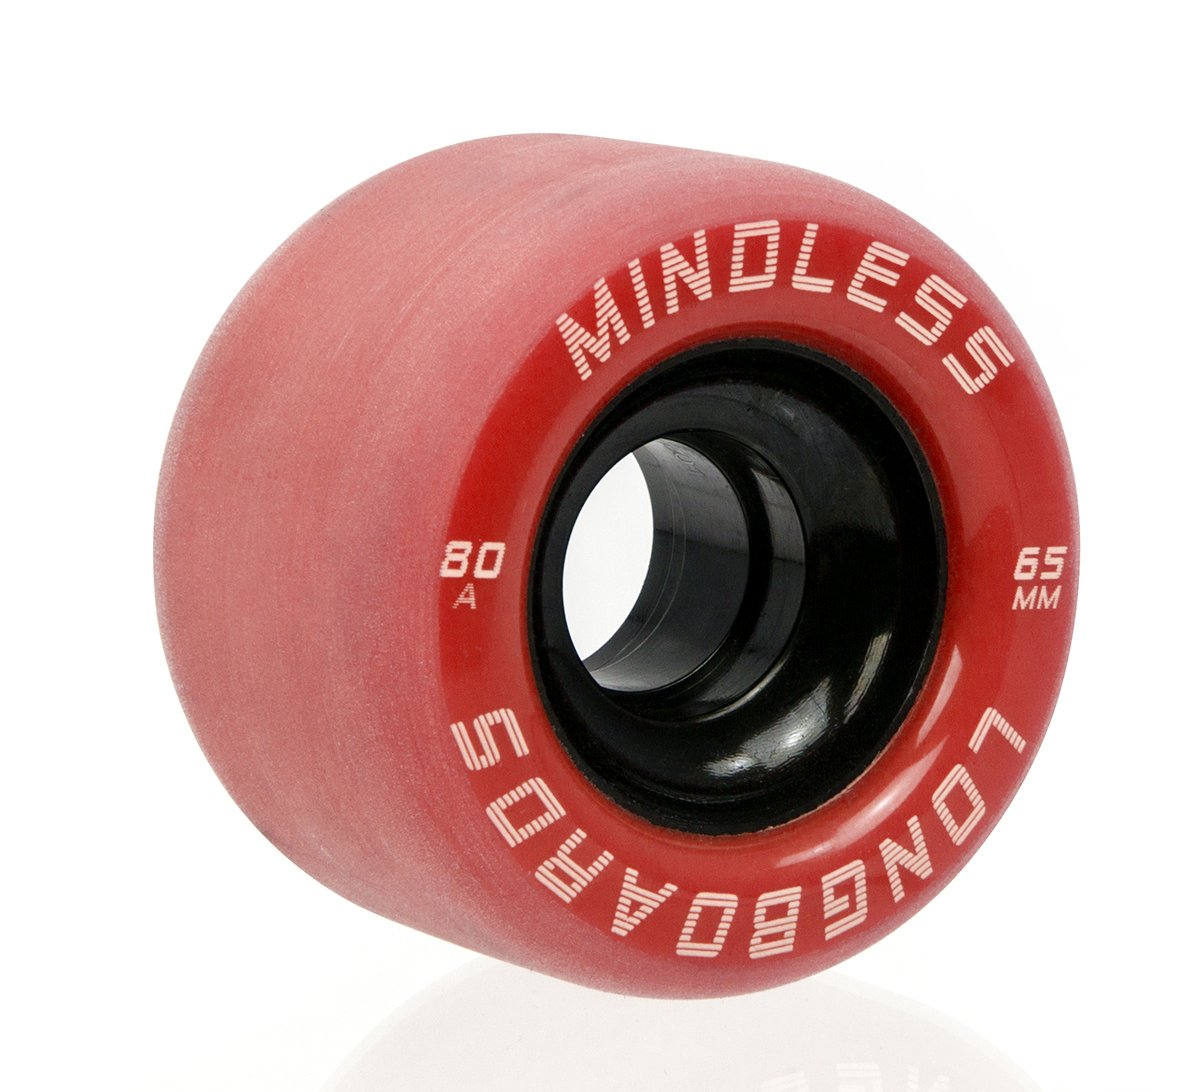 Mindless - Viper Wheels Red 65 x 44 mm 80a (sada 4 ks)